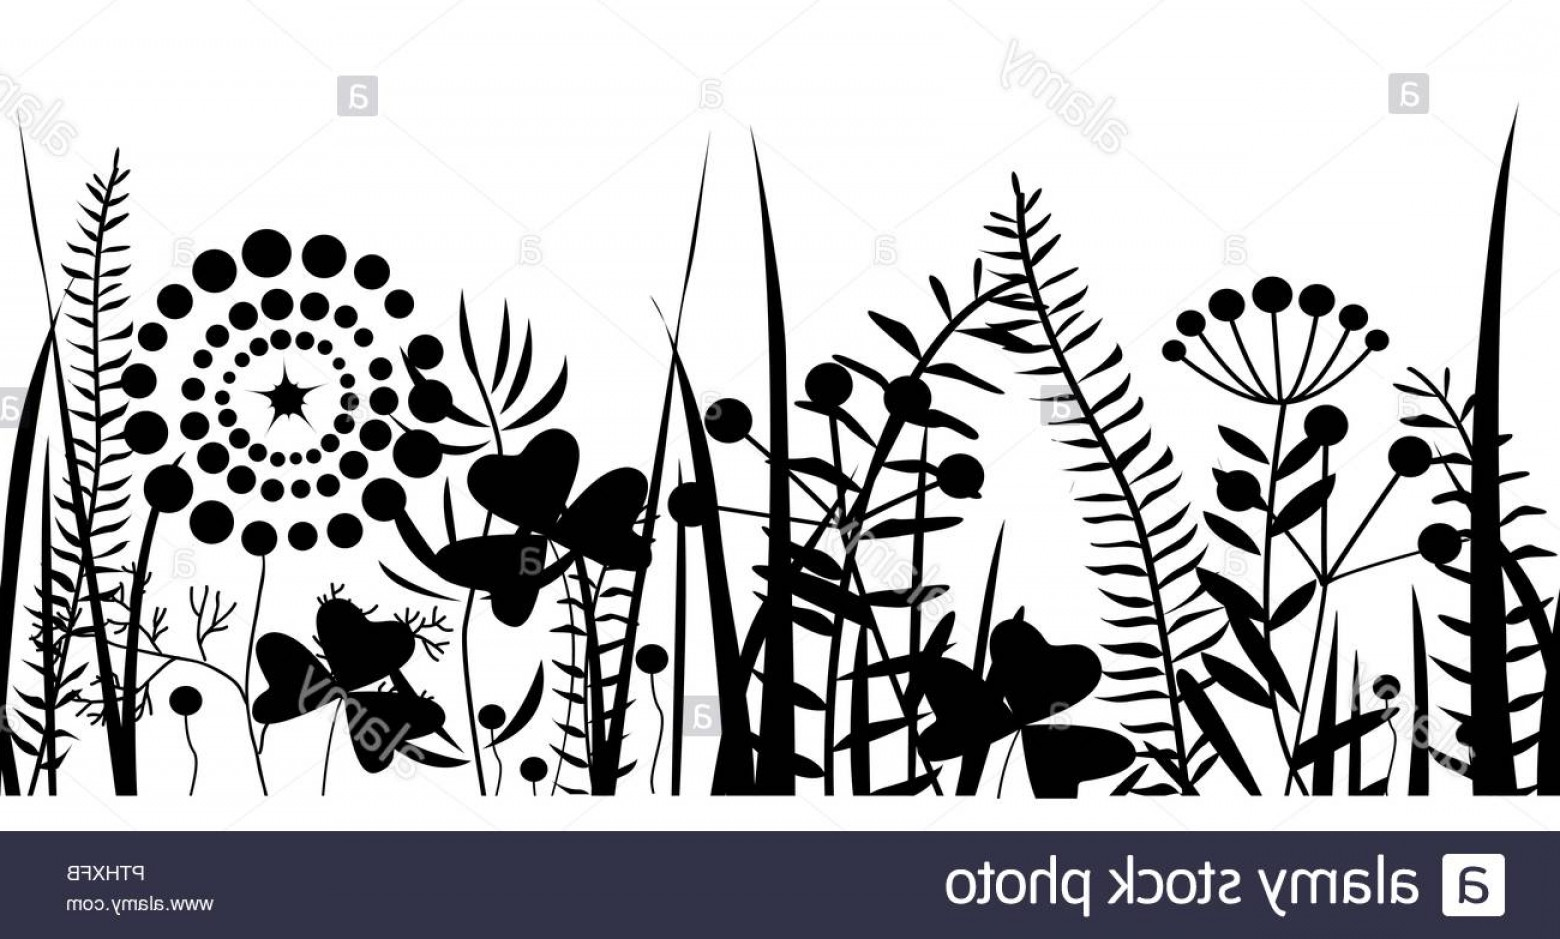 Spring Vector Silhouette: Spring Black Grass Silhouette Seamless Background Vector Pattern For Eco Nature Design Image